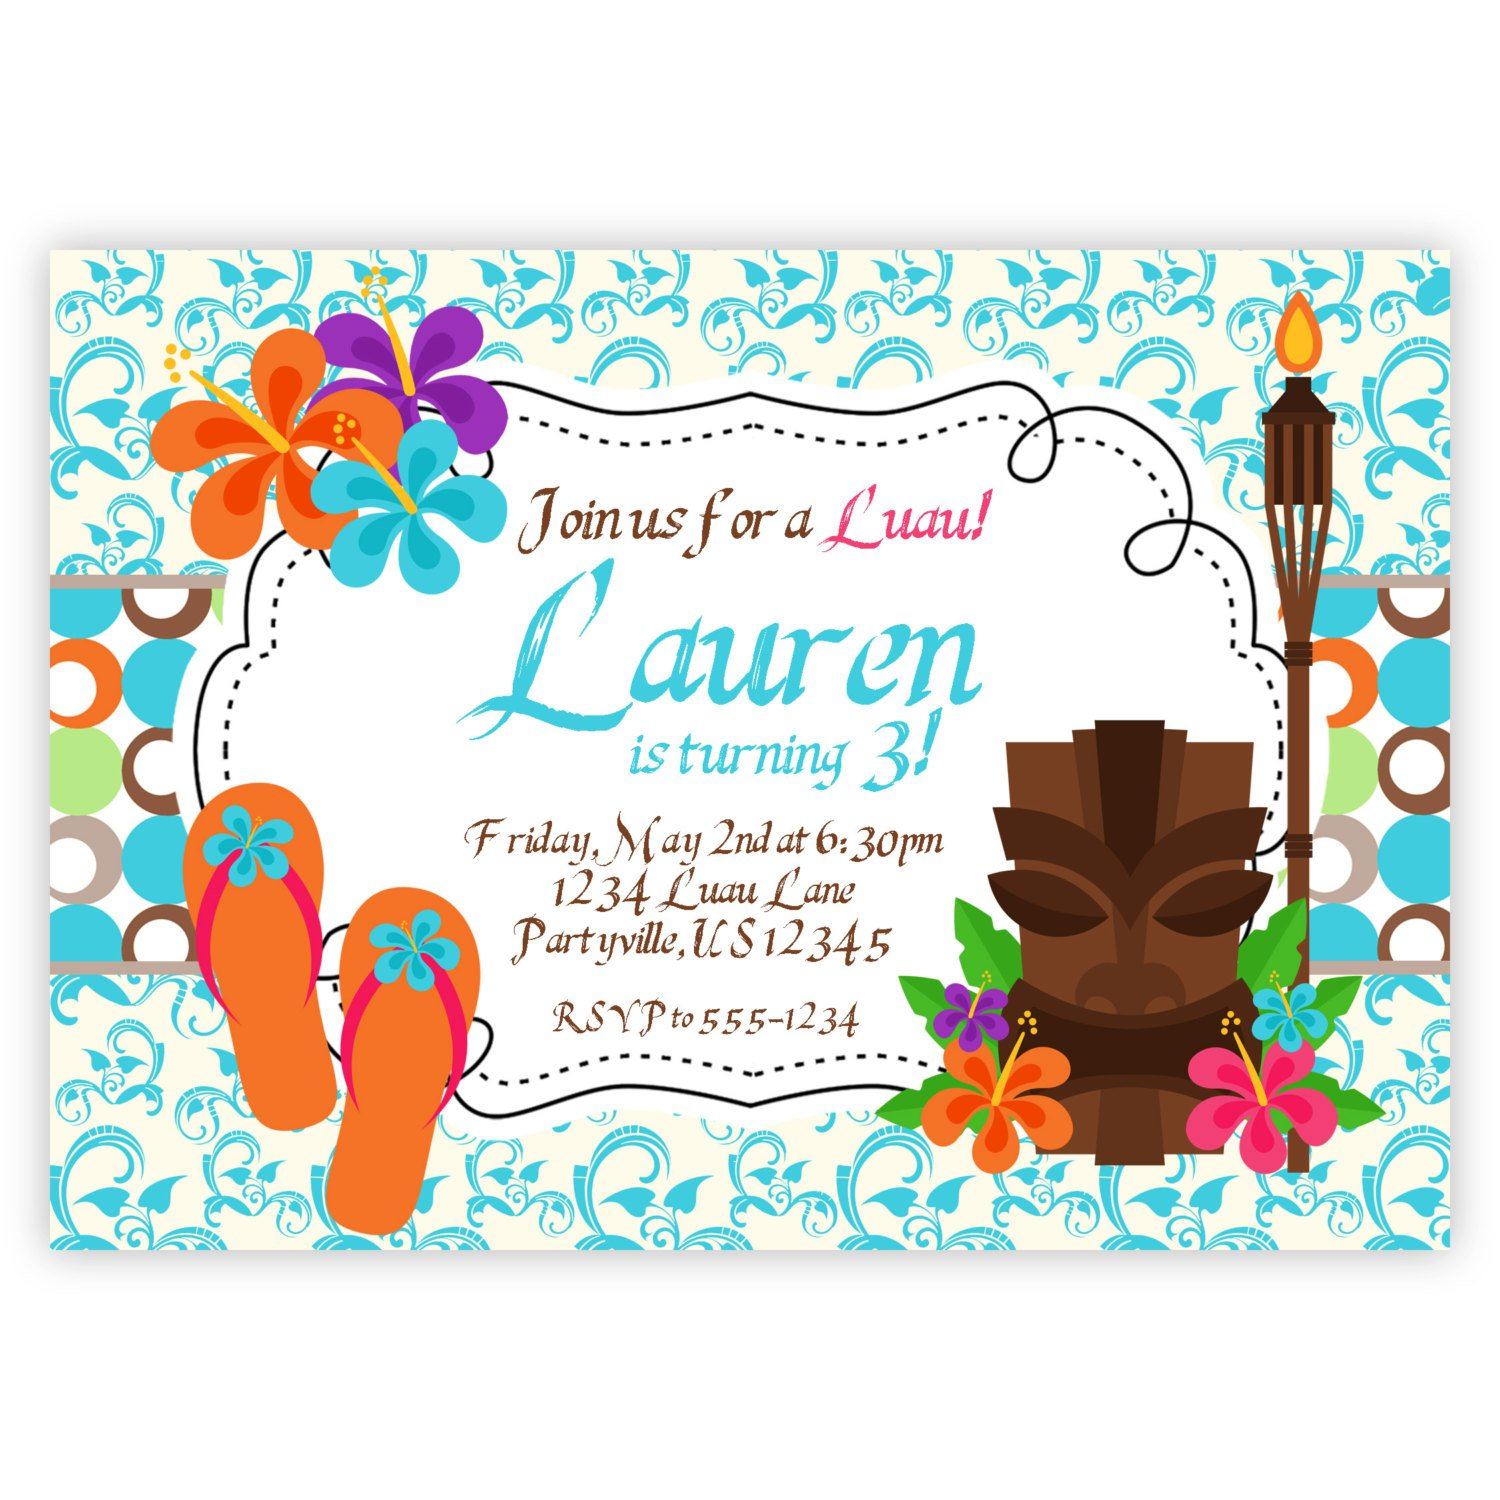 Luau Party Invitations birthday cards for 18 year olds – Hula Party Invitations